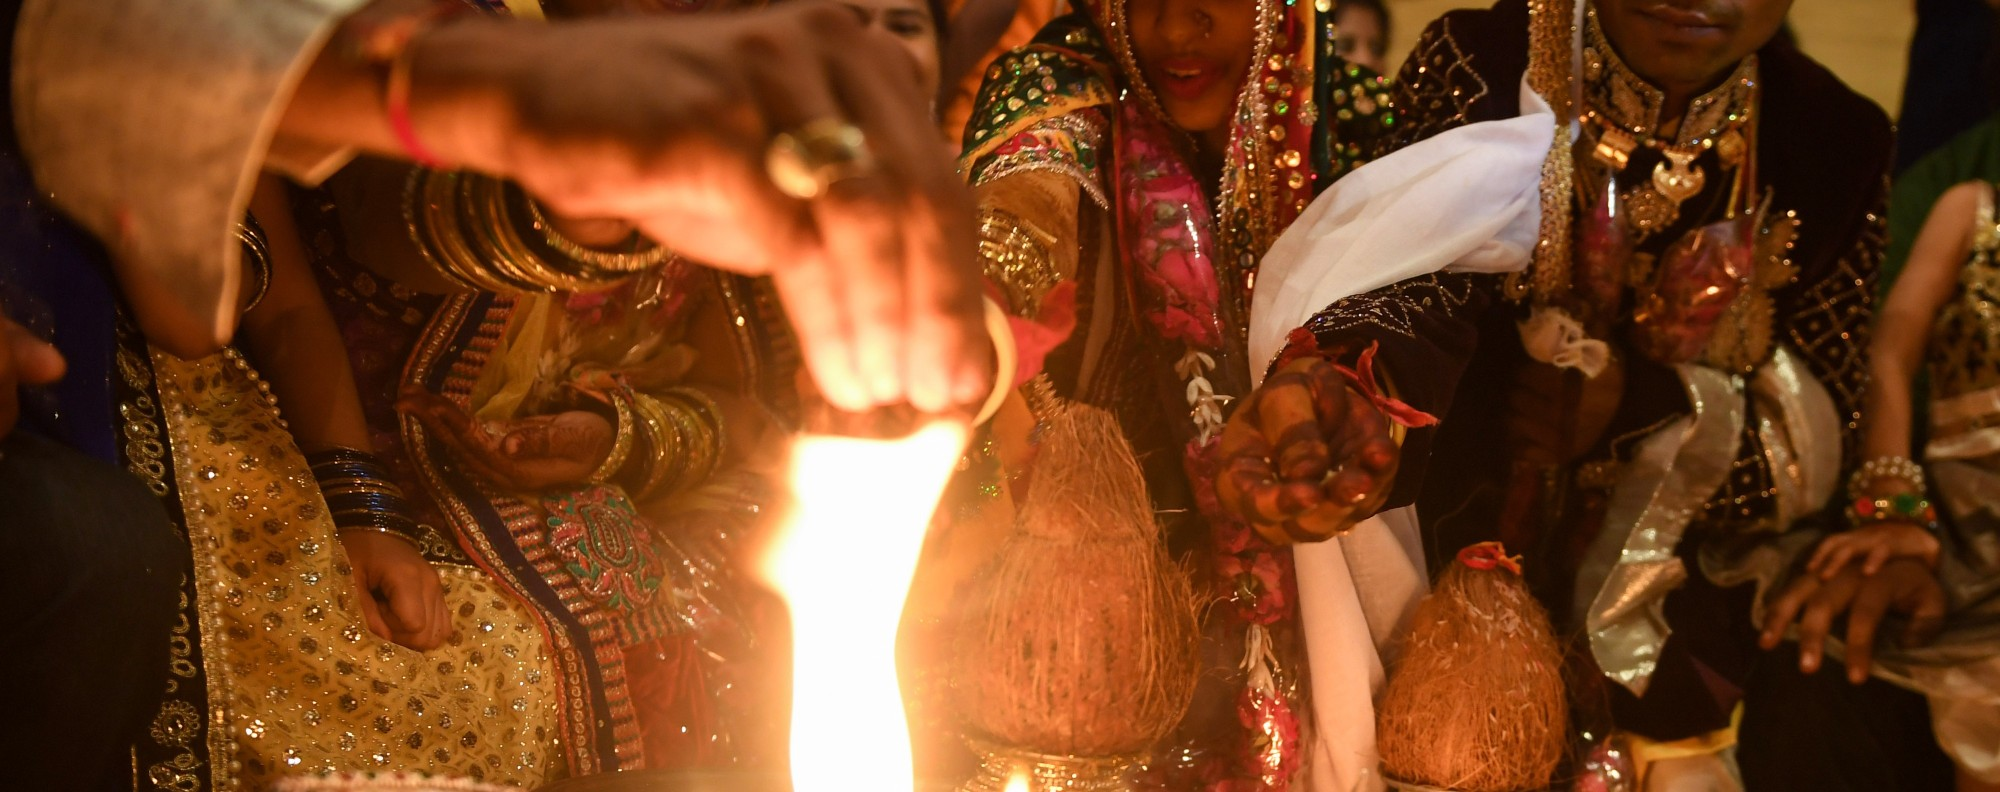 A wedding ceremony in Pakistan. Photo: AFP